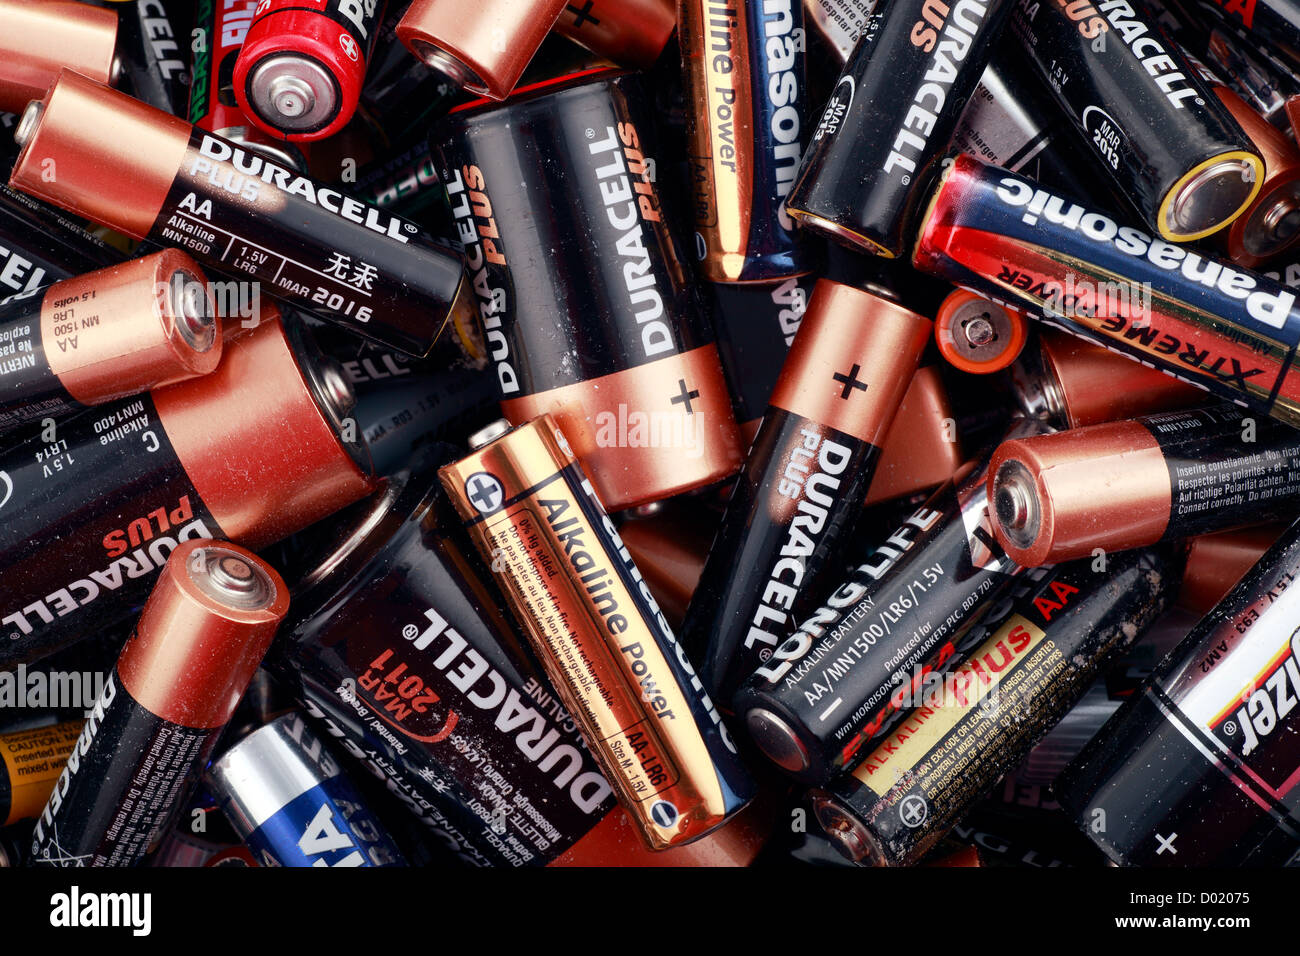 Old Batteries Stock Photos Images Alamy Nonrechargeble Battery Diagram Disguarded For Recycling Image